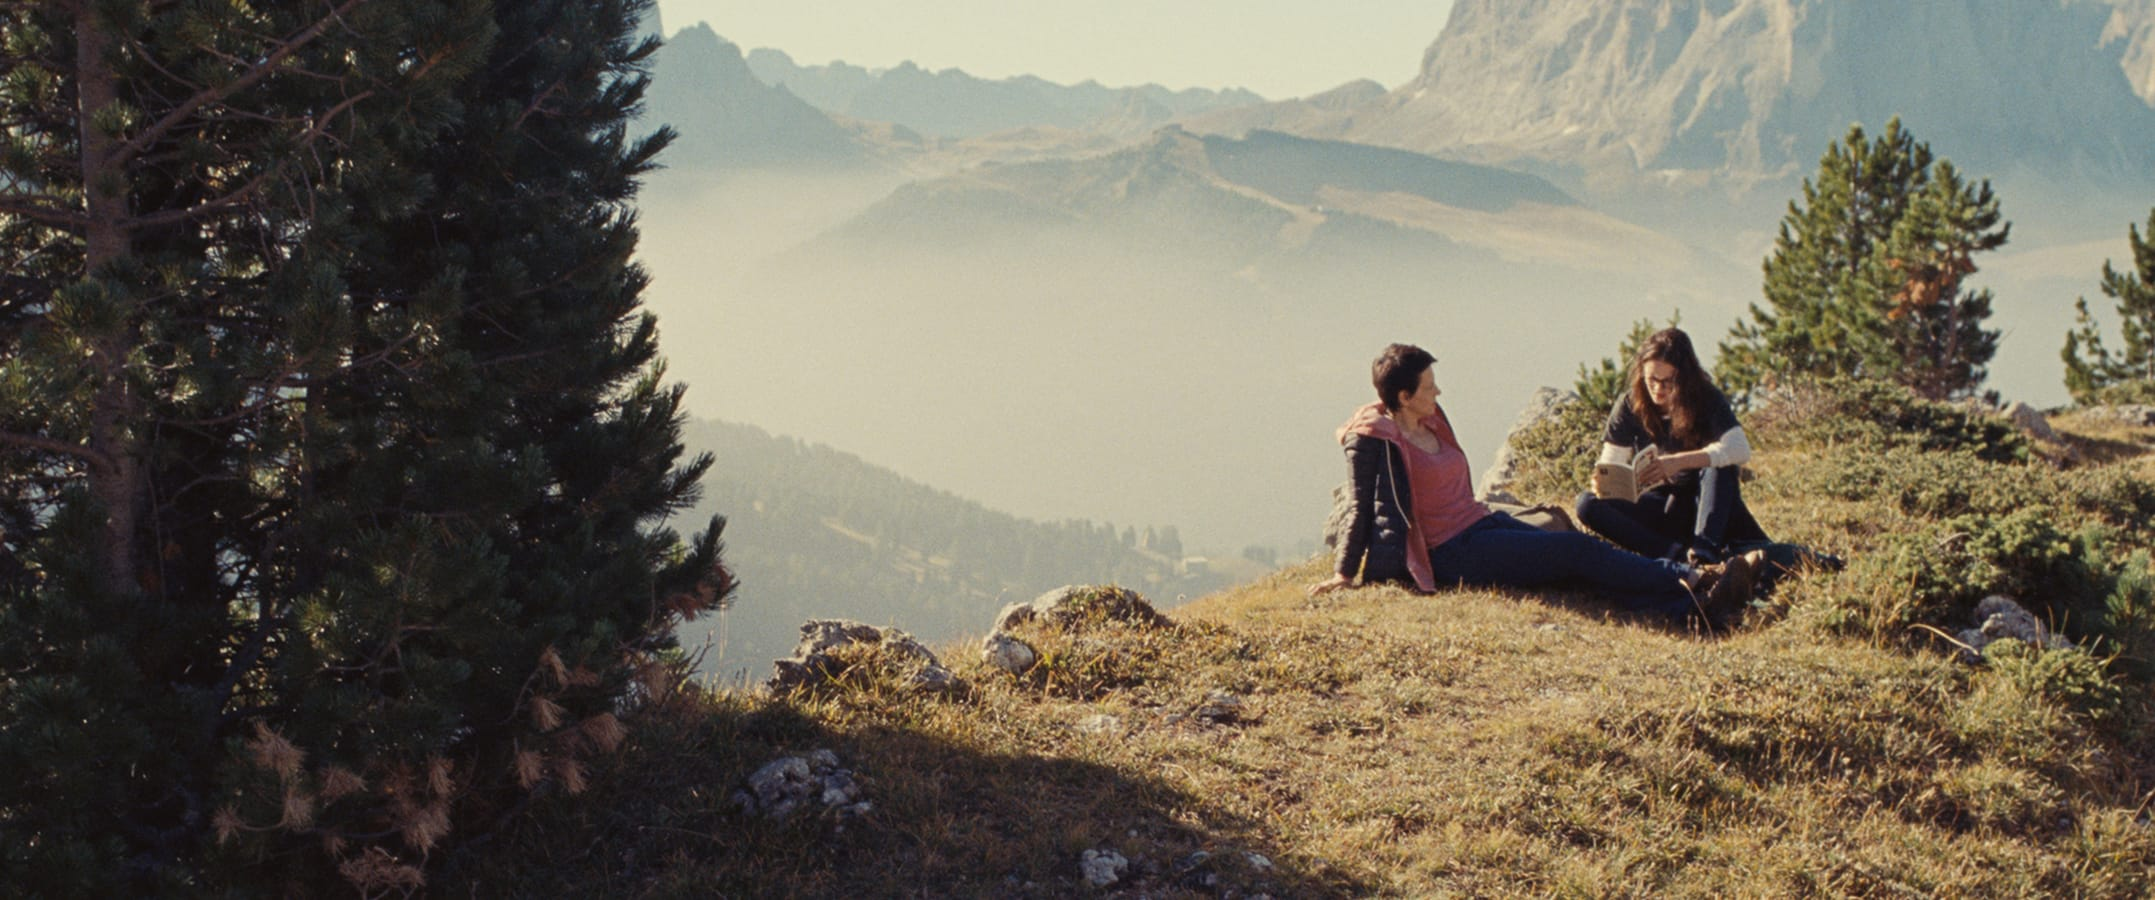 The vicious world of Female relationships- 'Clouds of Sils Maria' is the film of this week!